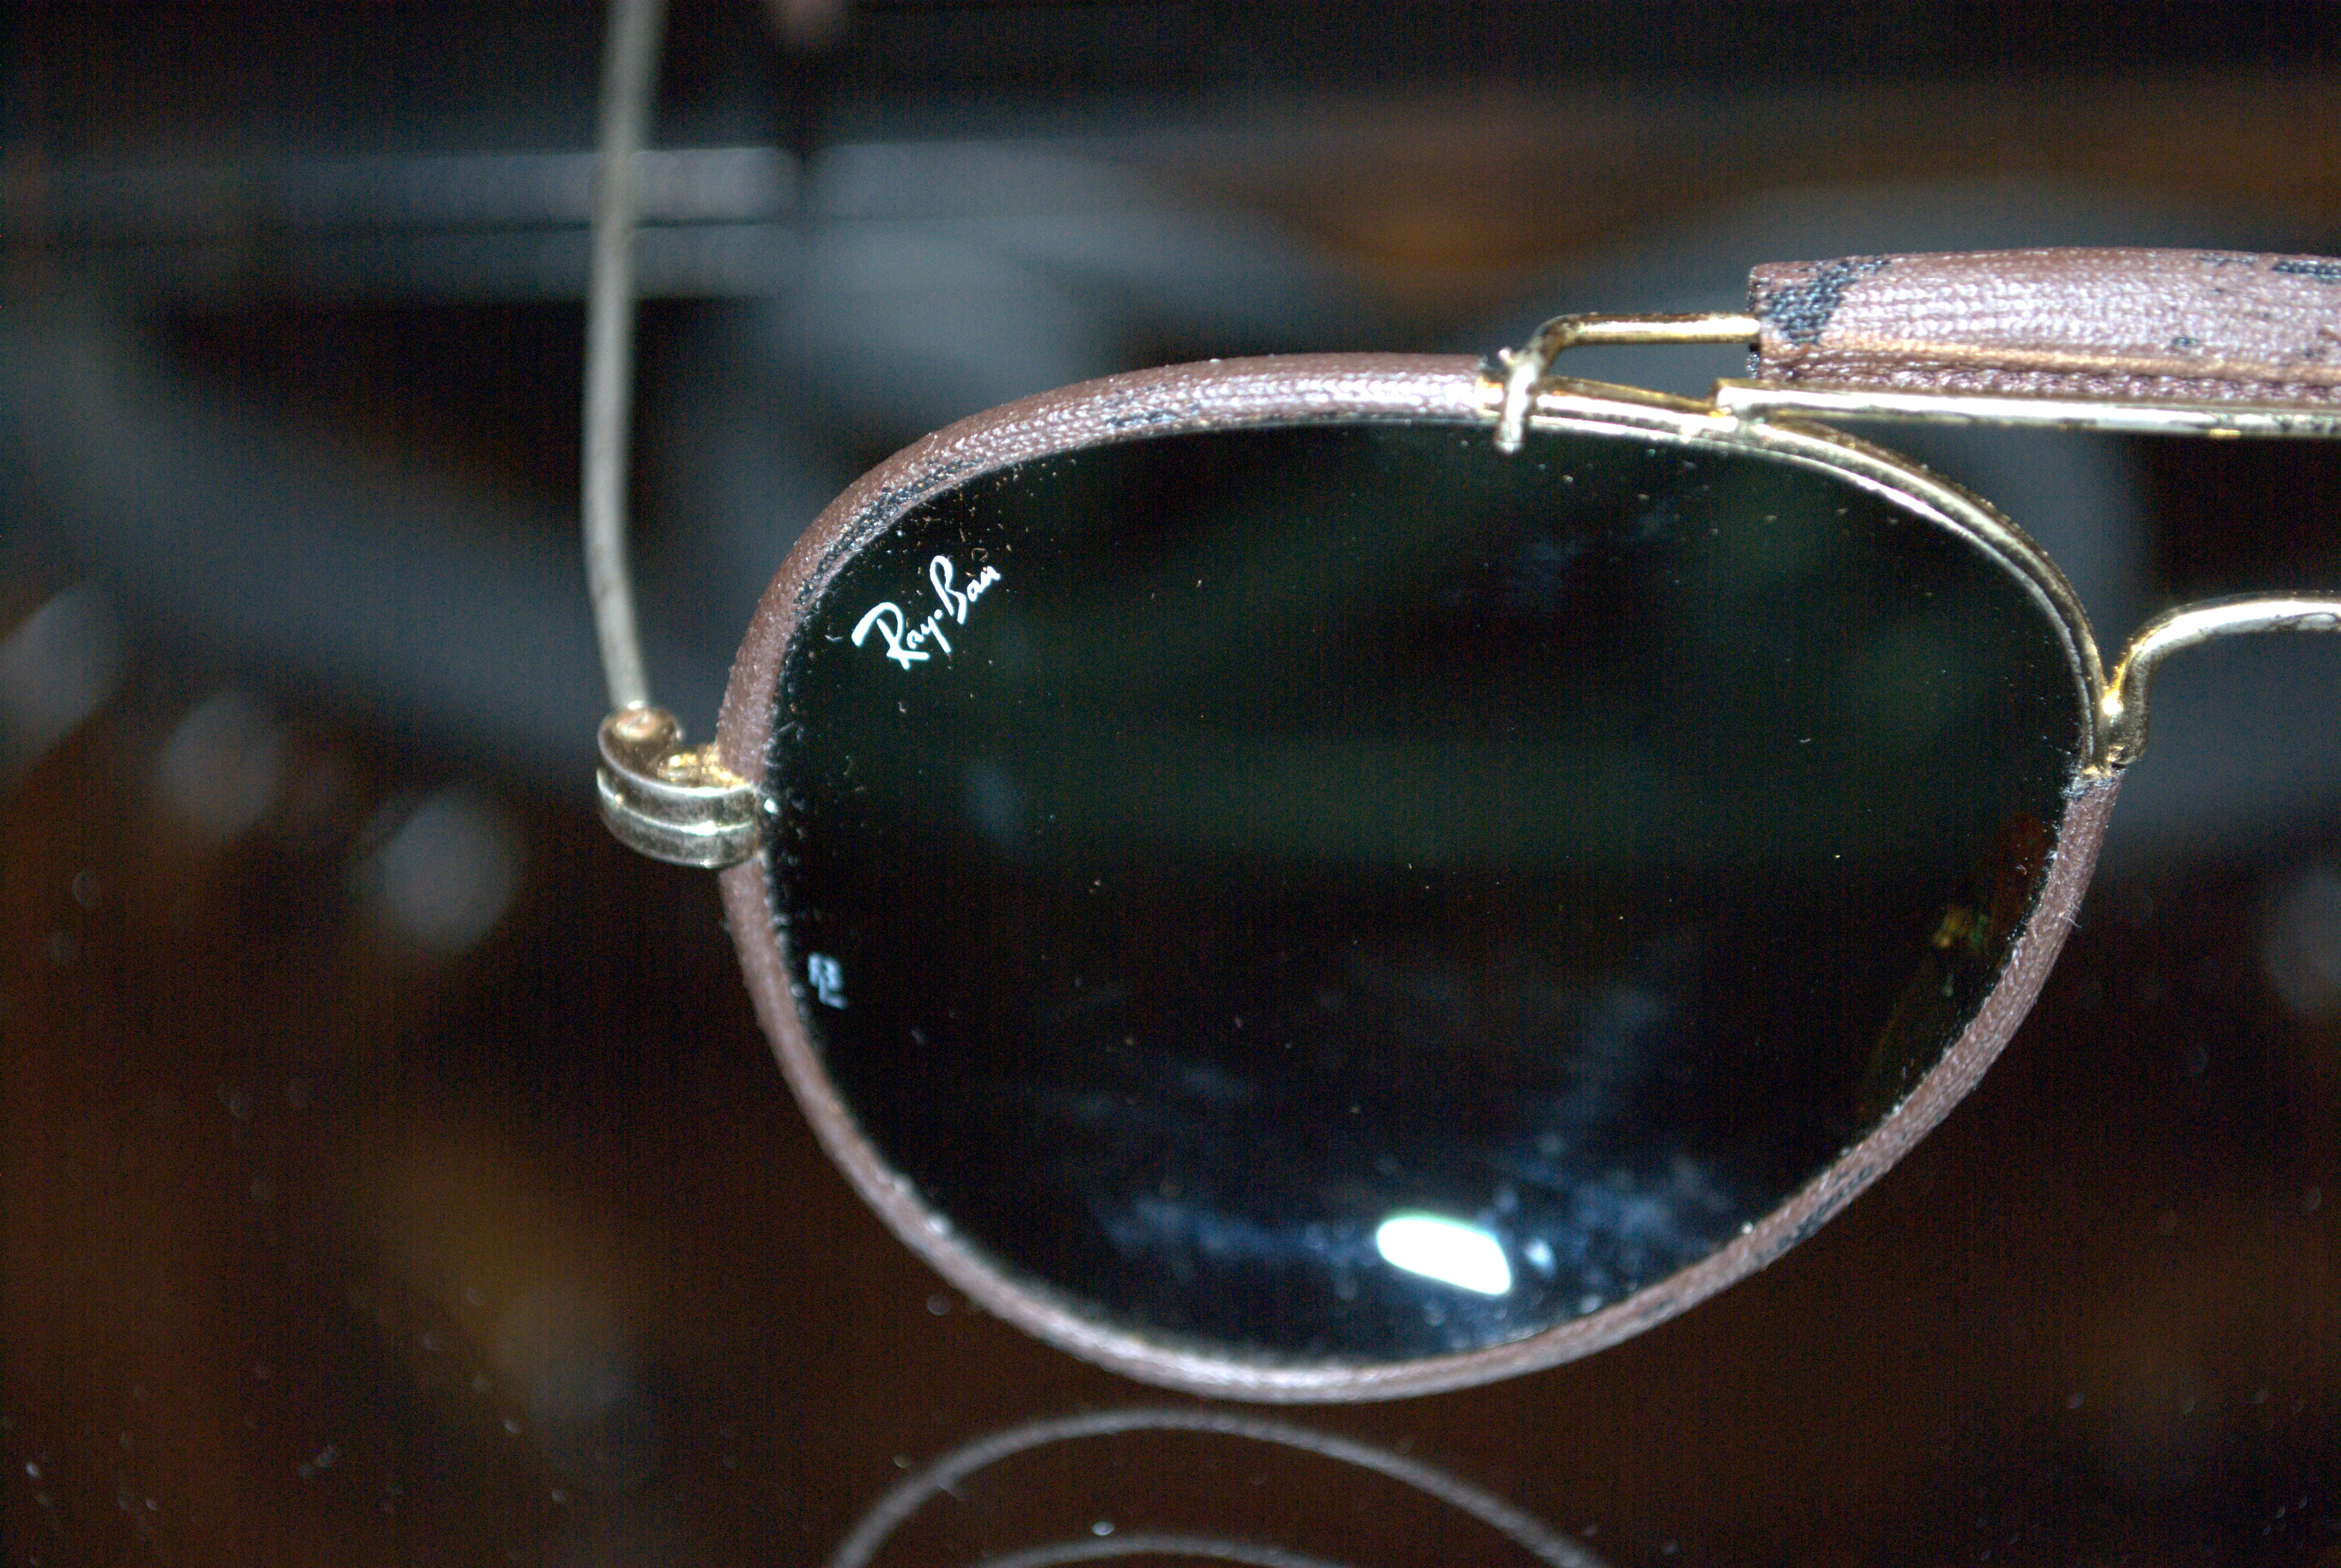 52c1c25eb232 Thanks for any information that can be offered! The BL logo is etched into  both lenses.